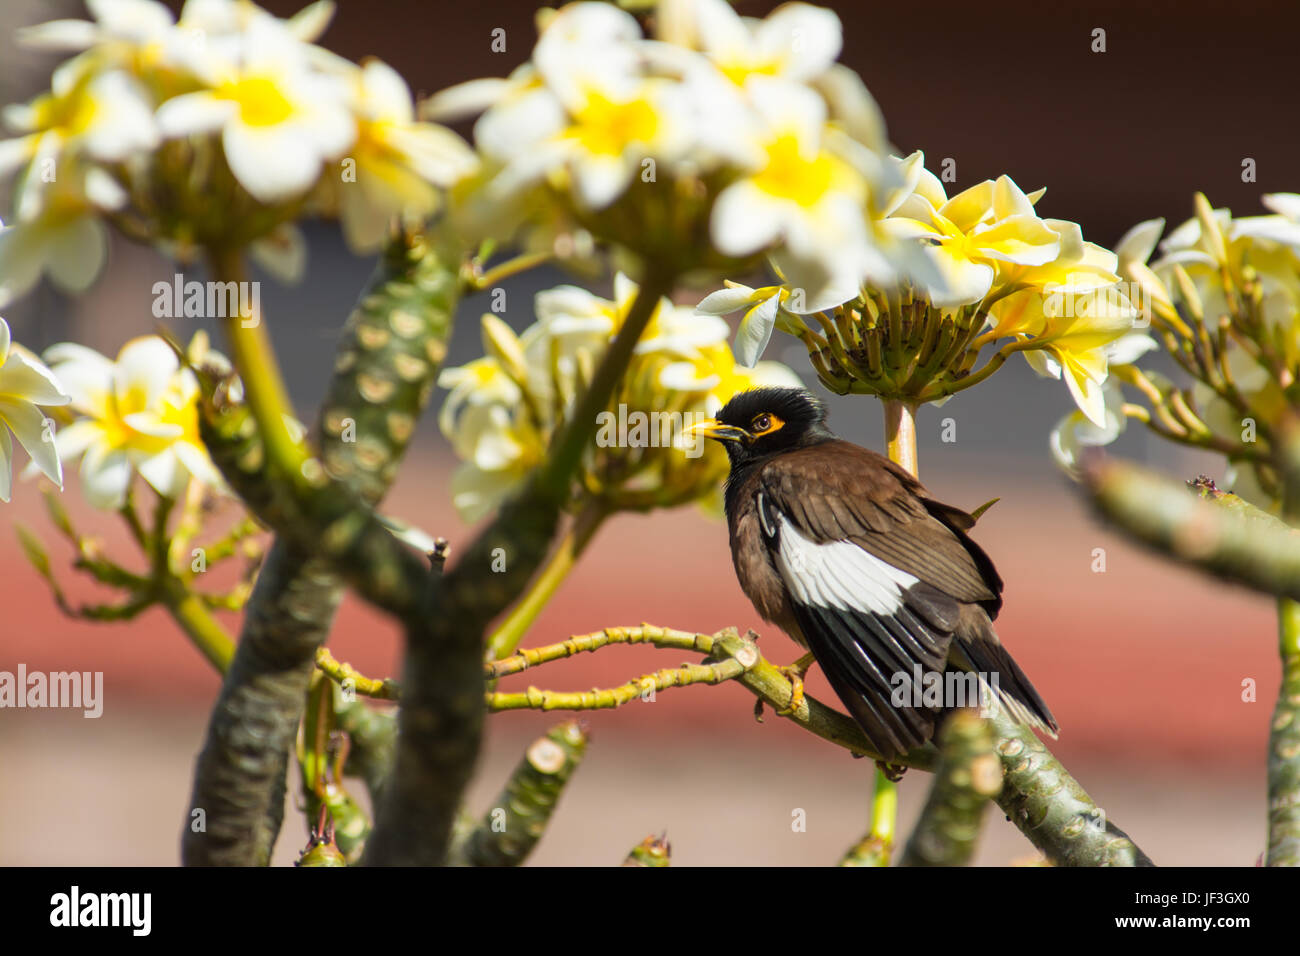 Common myna,Acridotheres tristis, perched among Plumeria flowers on the island of Maui. - Stock Image